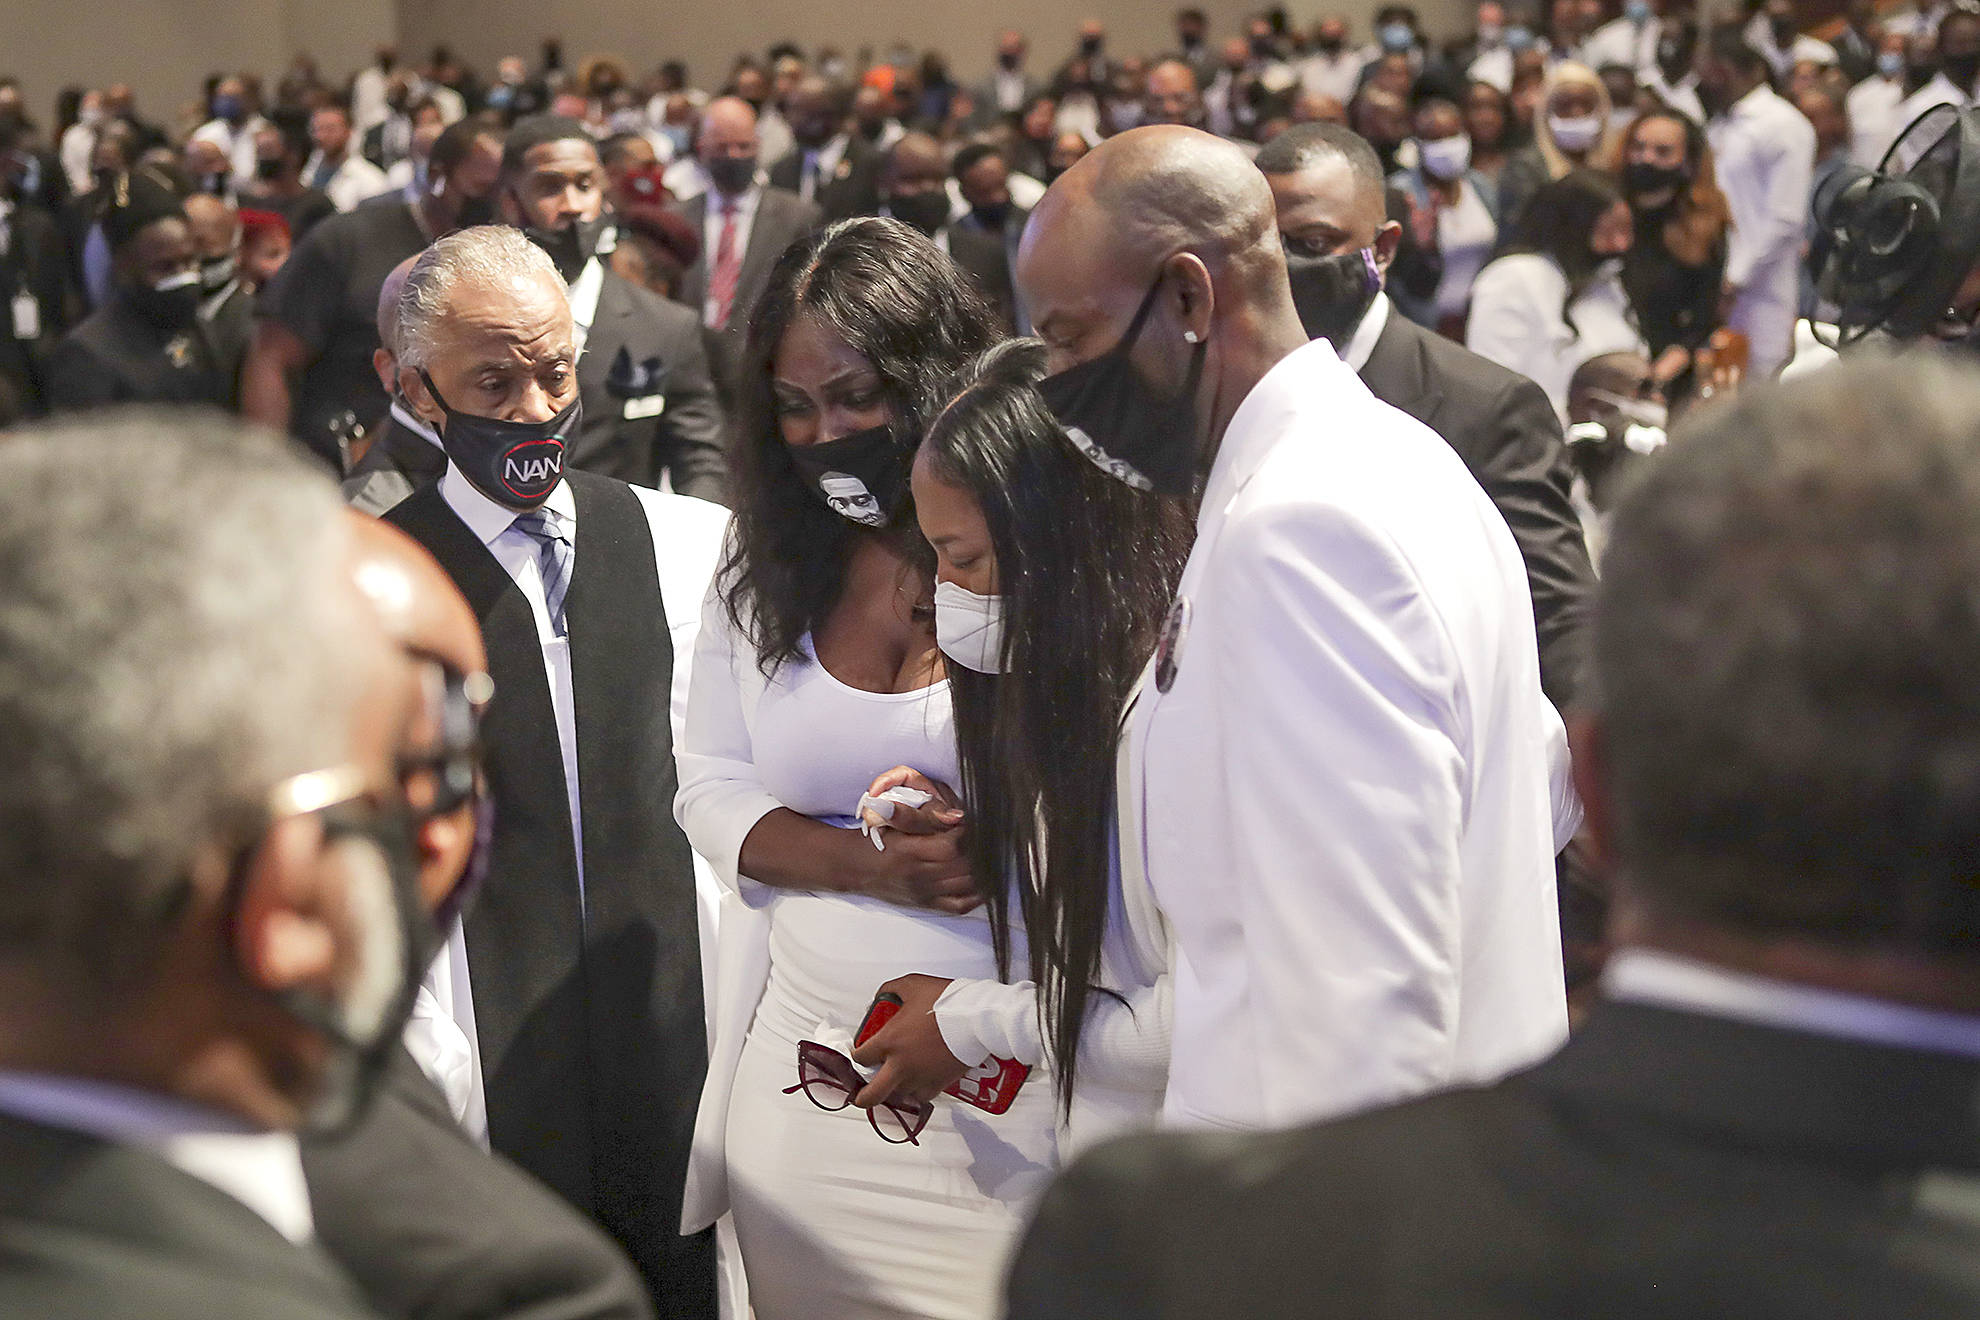 Family members react as they view the casket of George Floyd during the private funeral held Tuesday in Houston, Texas. (Godofredo A. Vasquez/Getty Images)